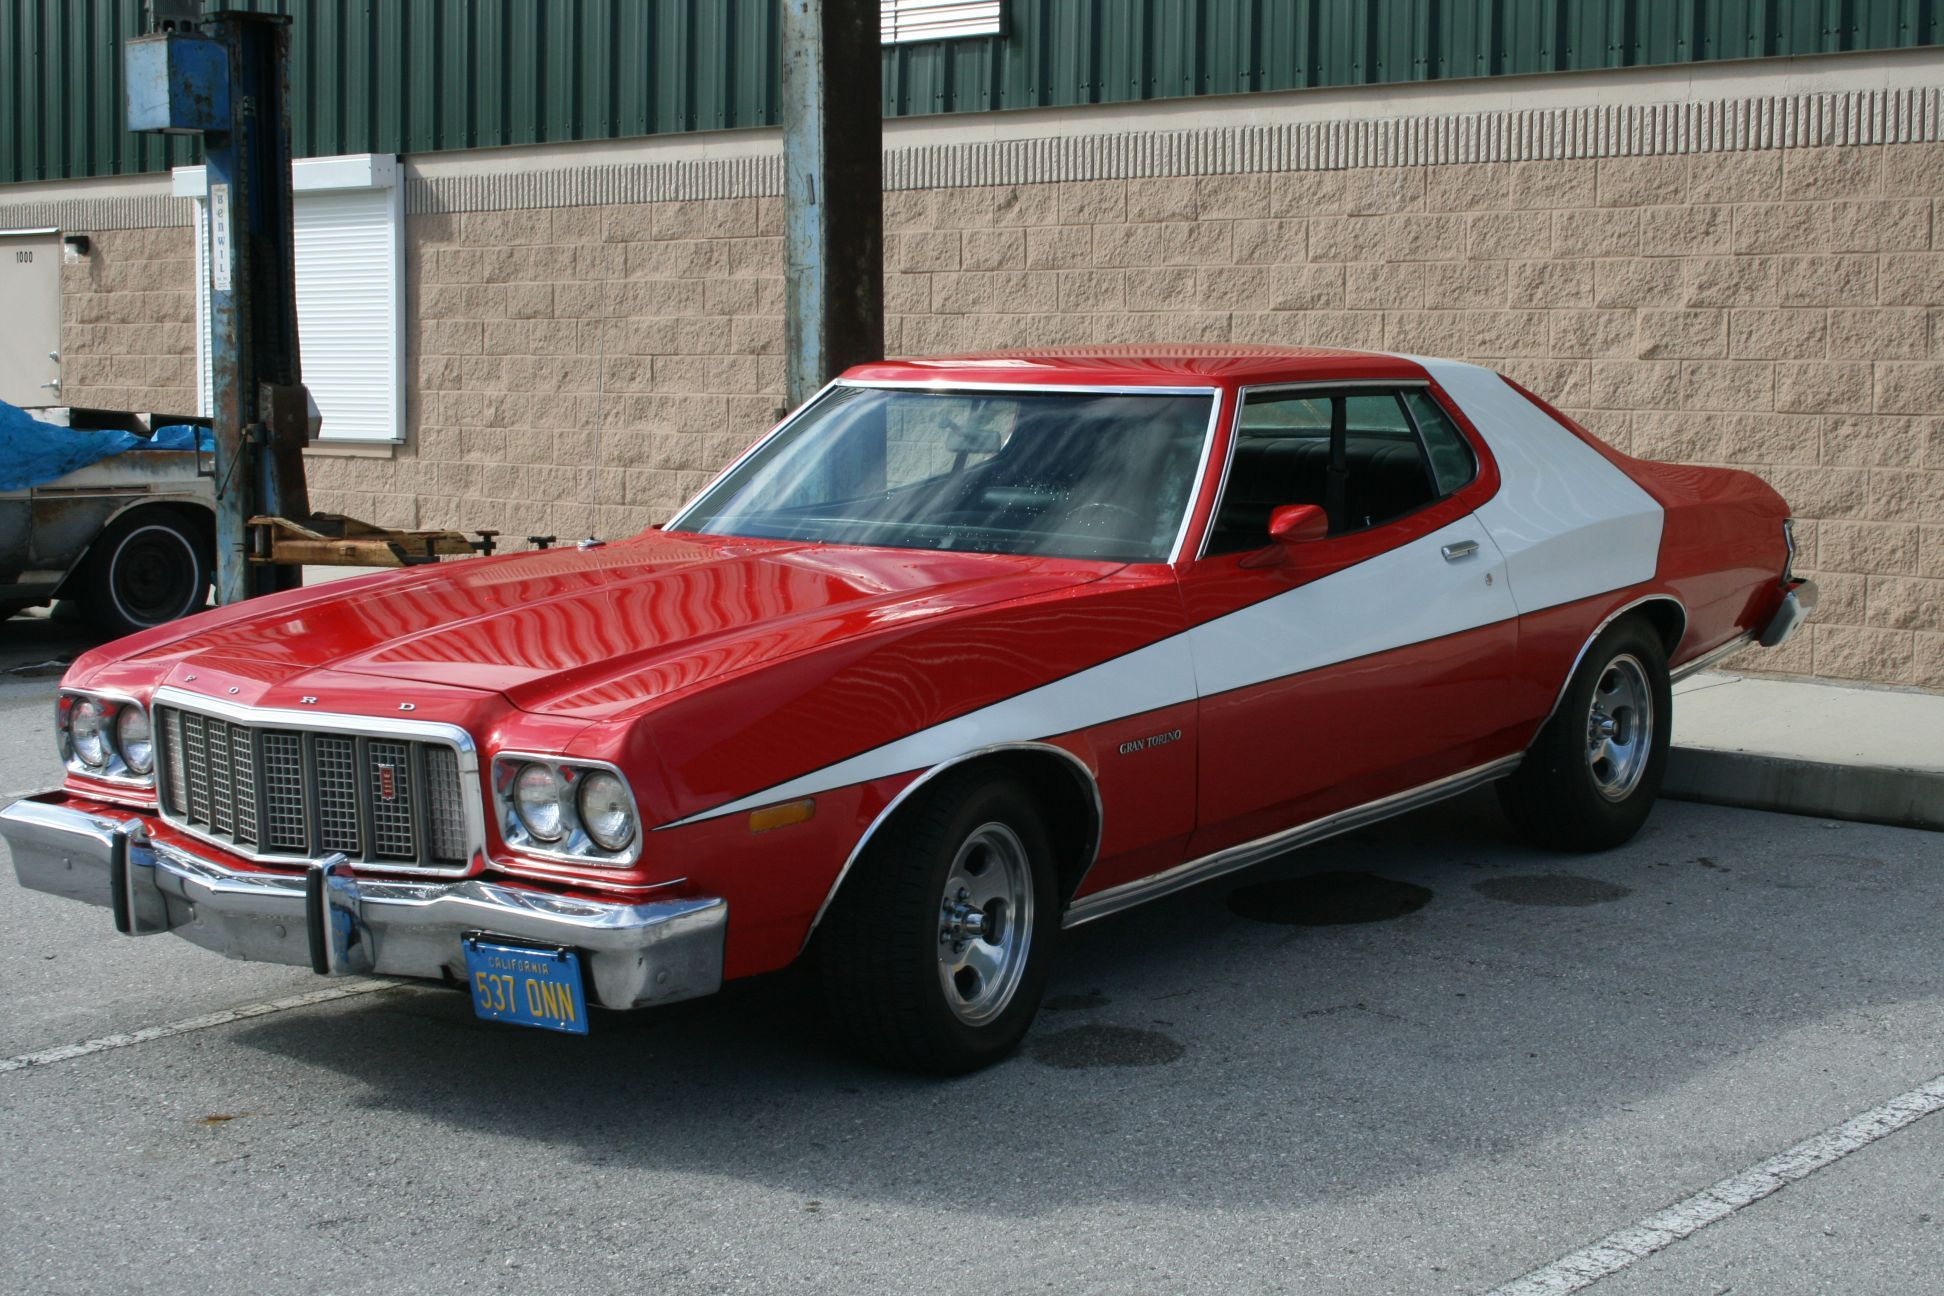 1976 Ford Gran Torino With Images Cars Movie Ford Torino Classic Cars